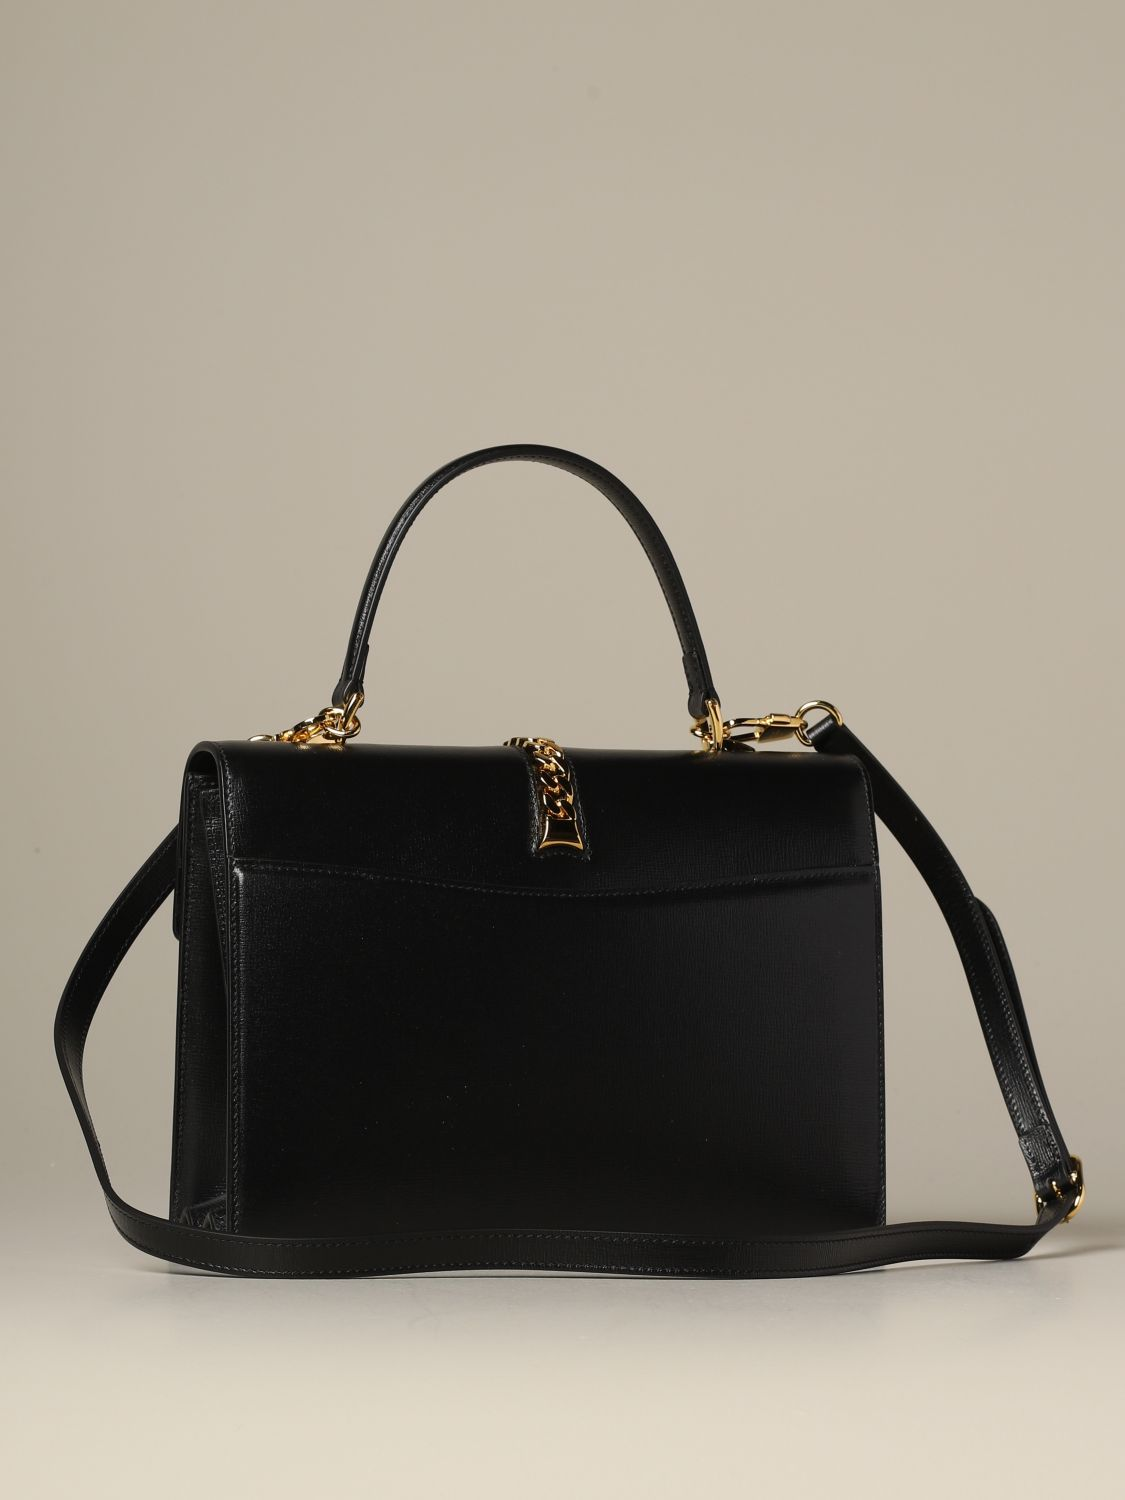 Handbag Gucci: Shoulder bag women Gucci black 2